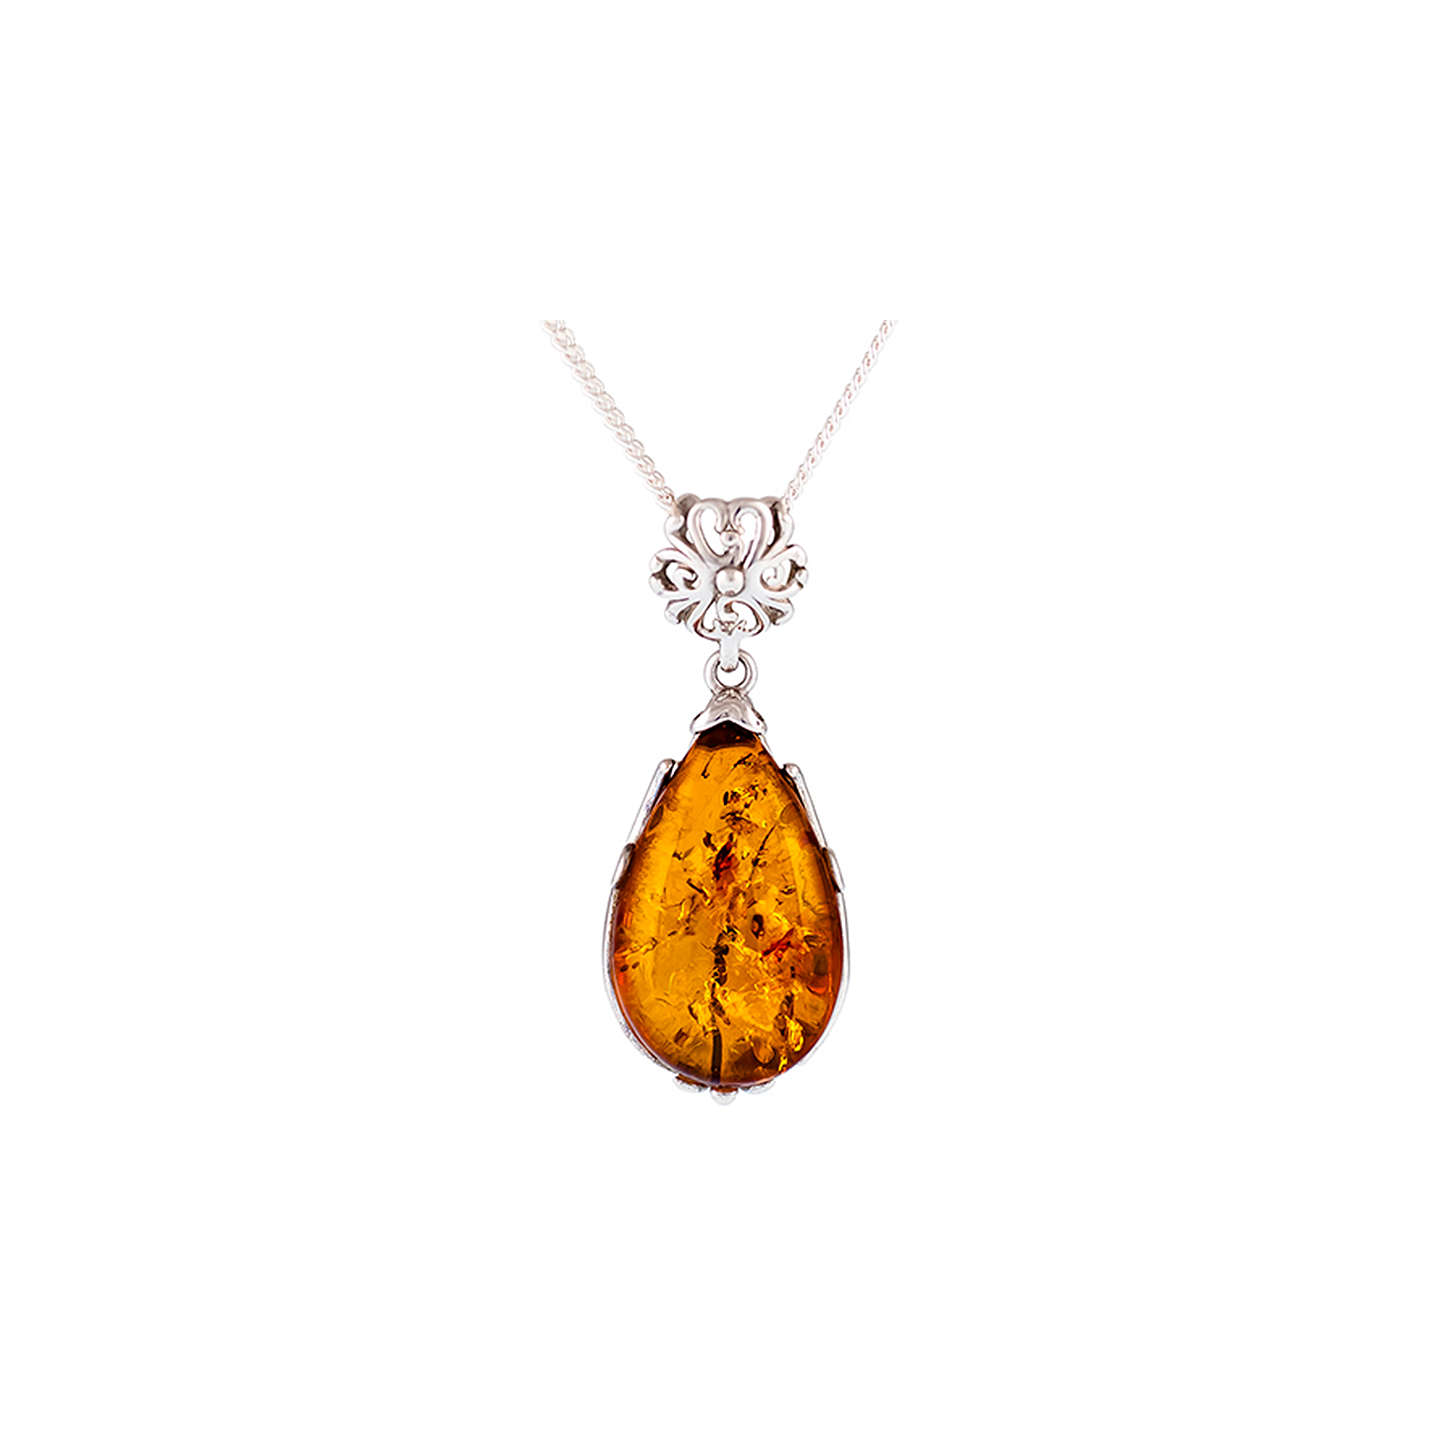 yellow natural rakuten shop diamondprincess gold diamond elegant necklace product shaped in pear carat pendant dancing